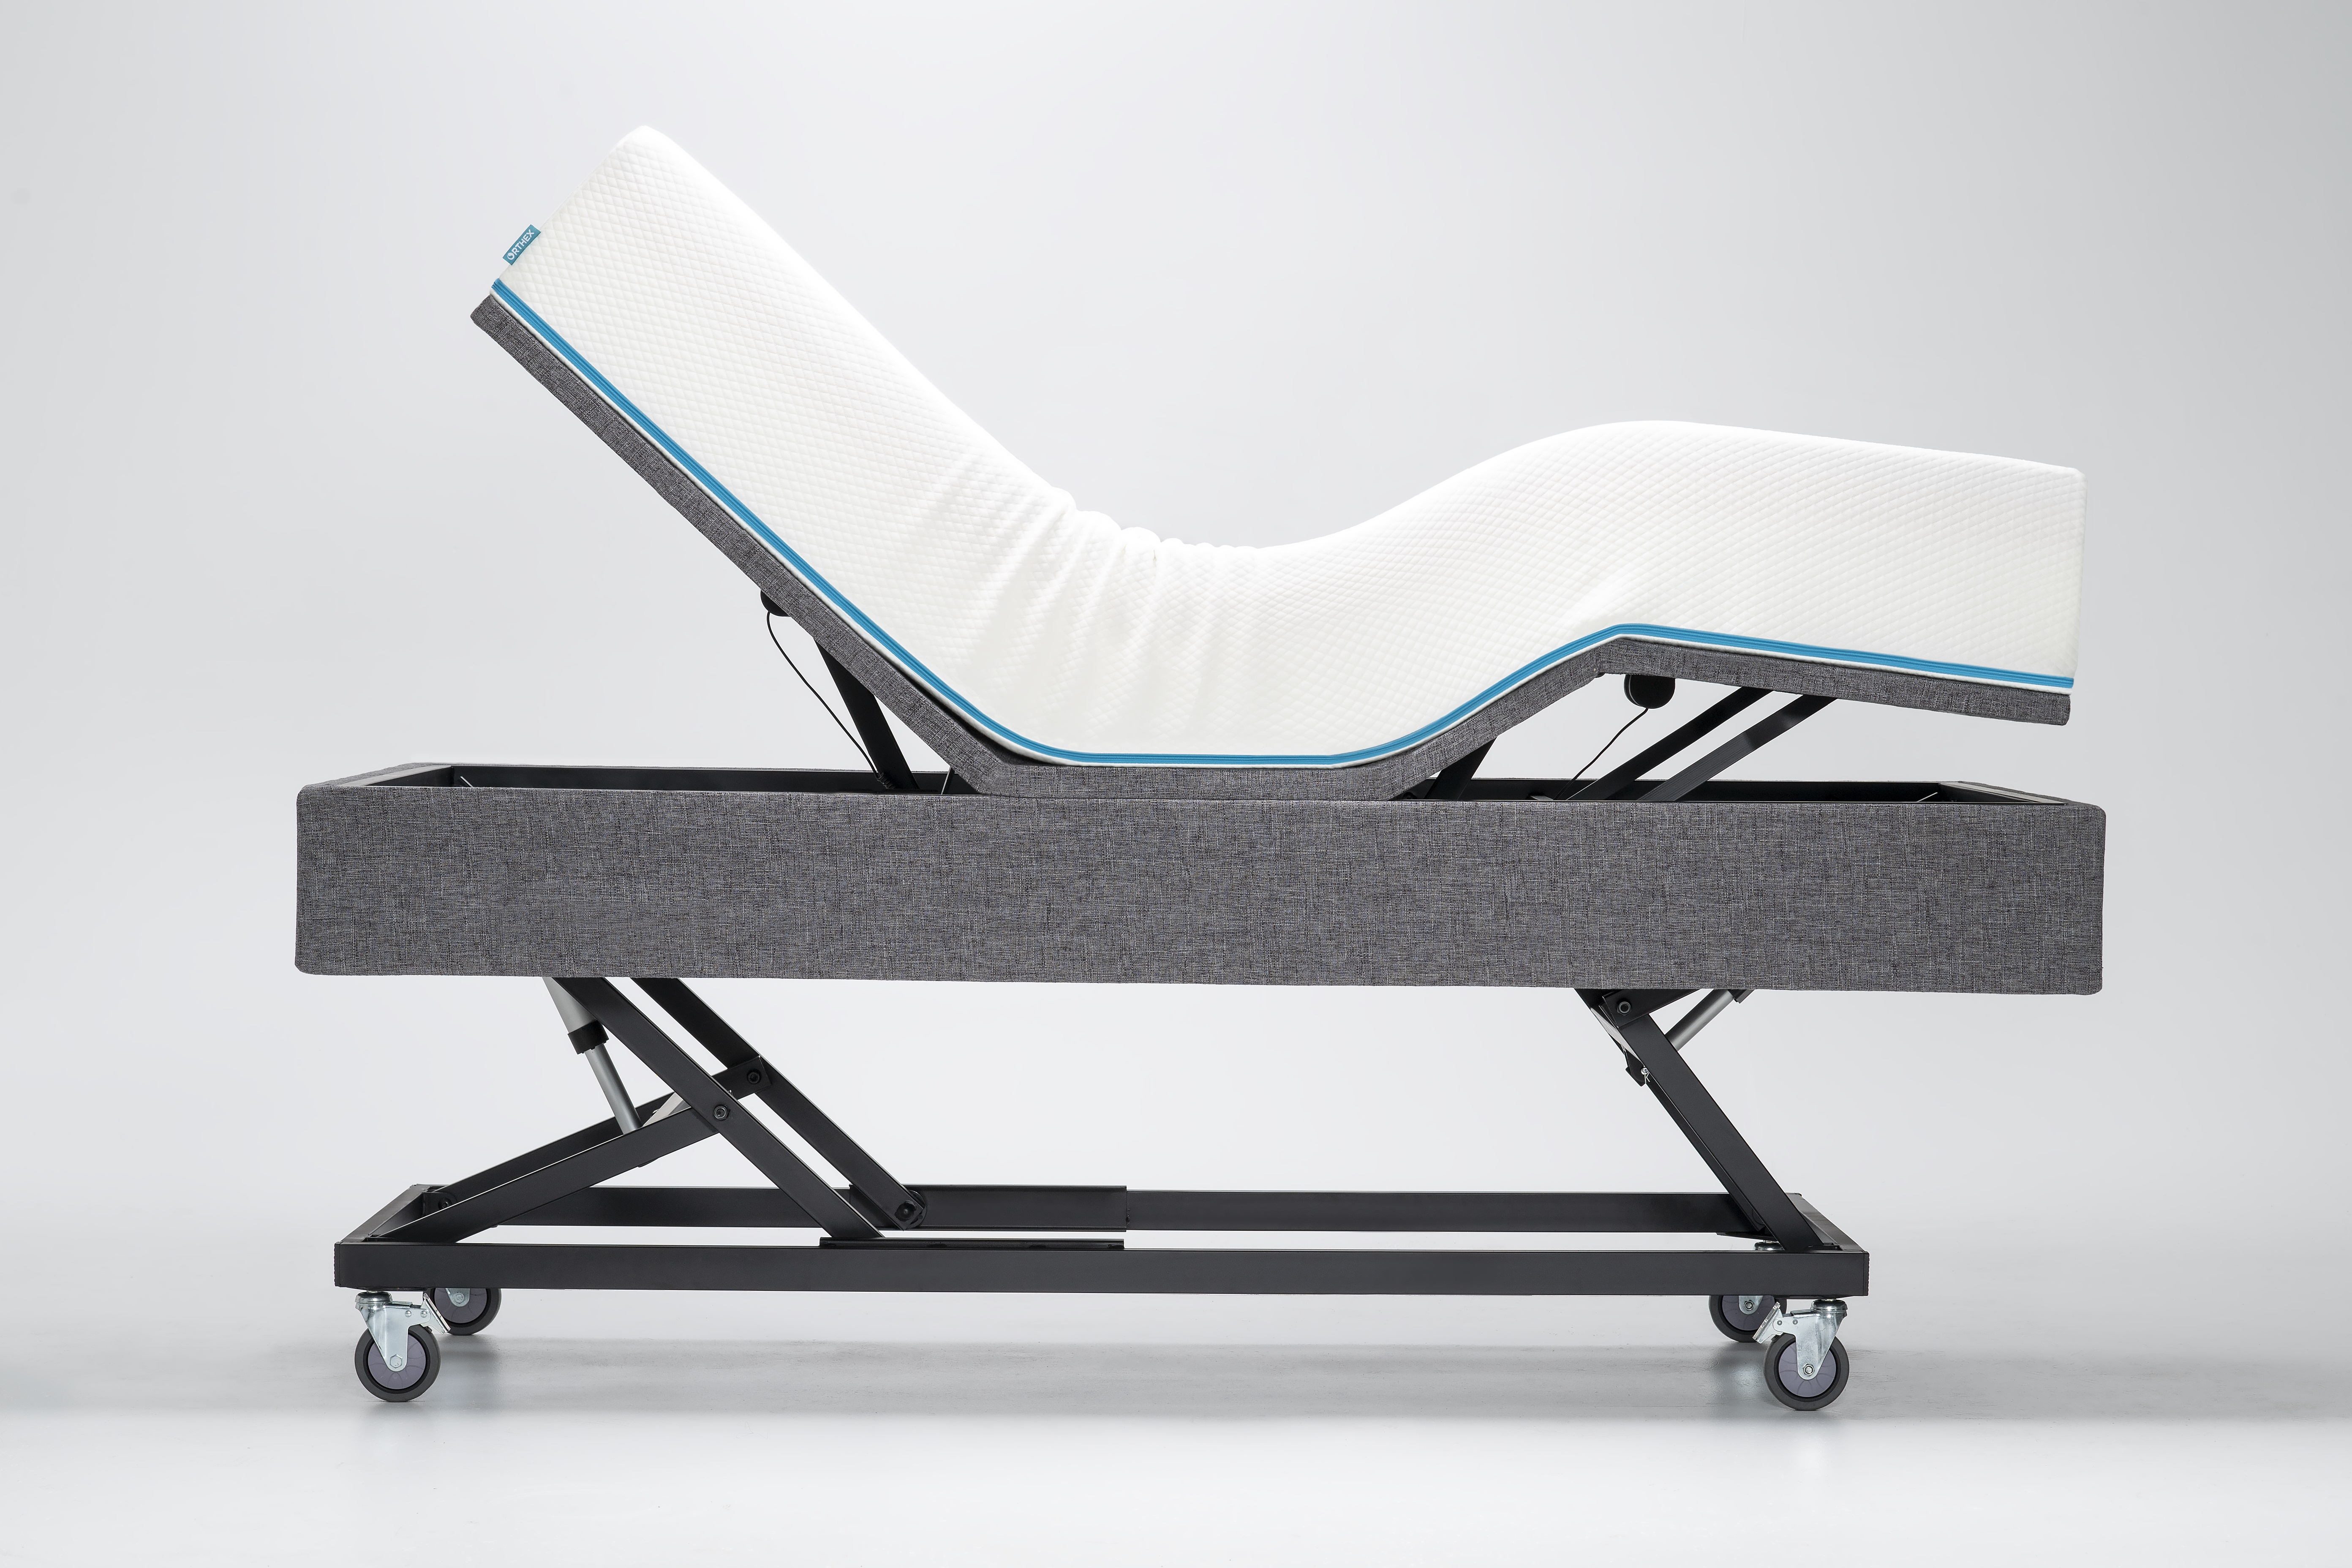 Multi-positions adjustable bed